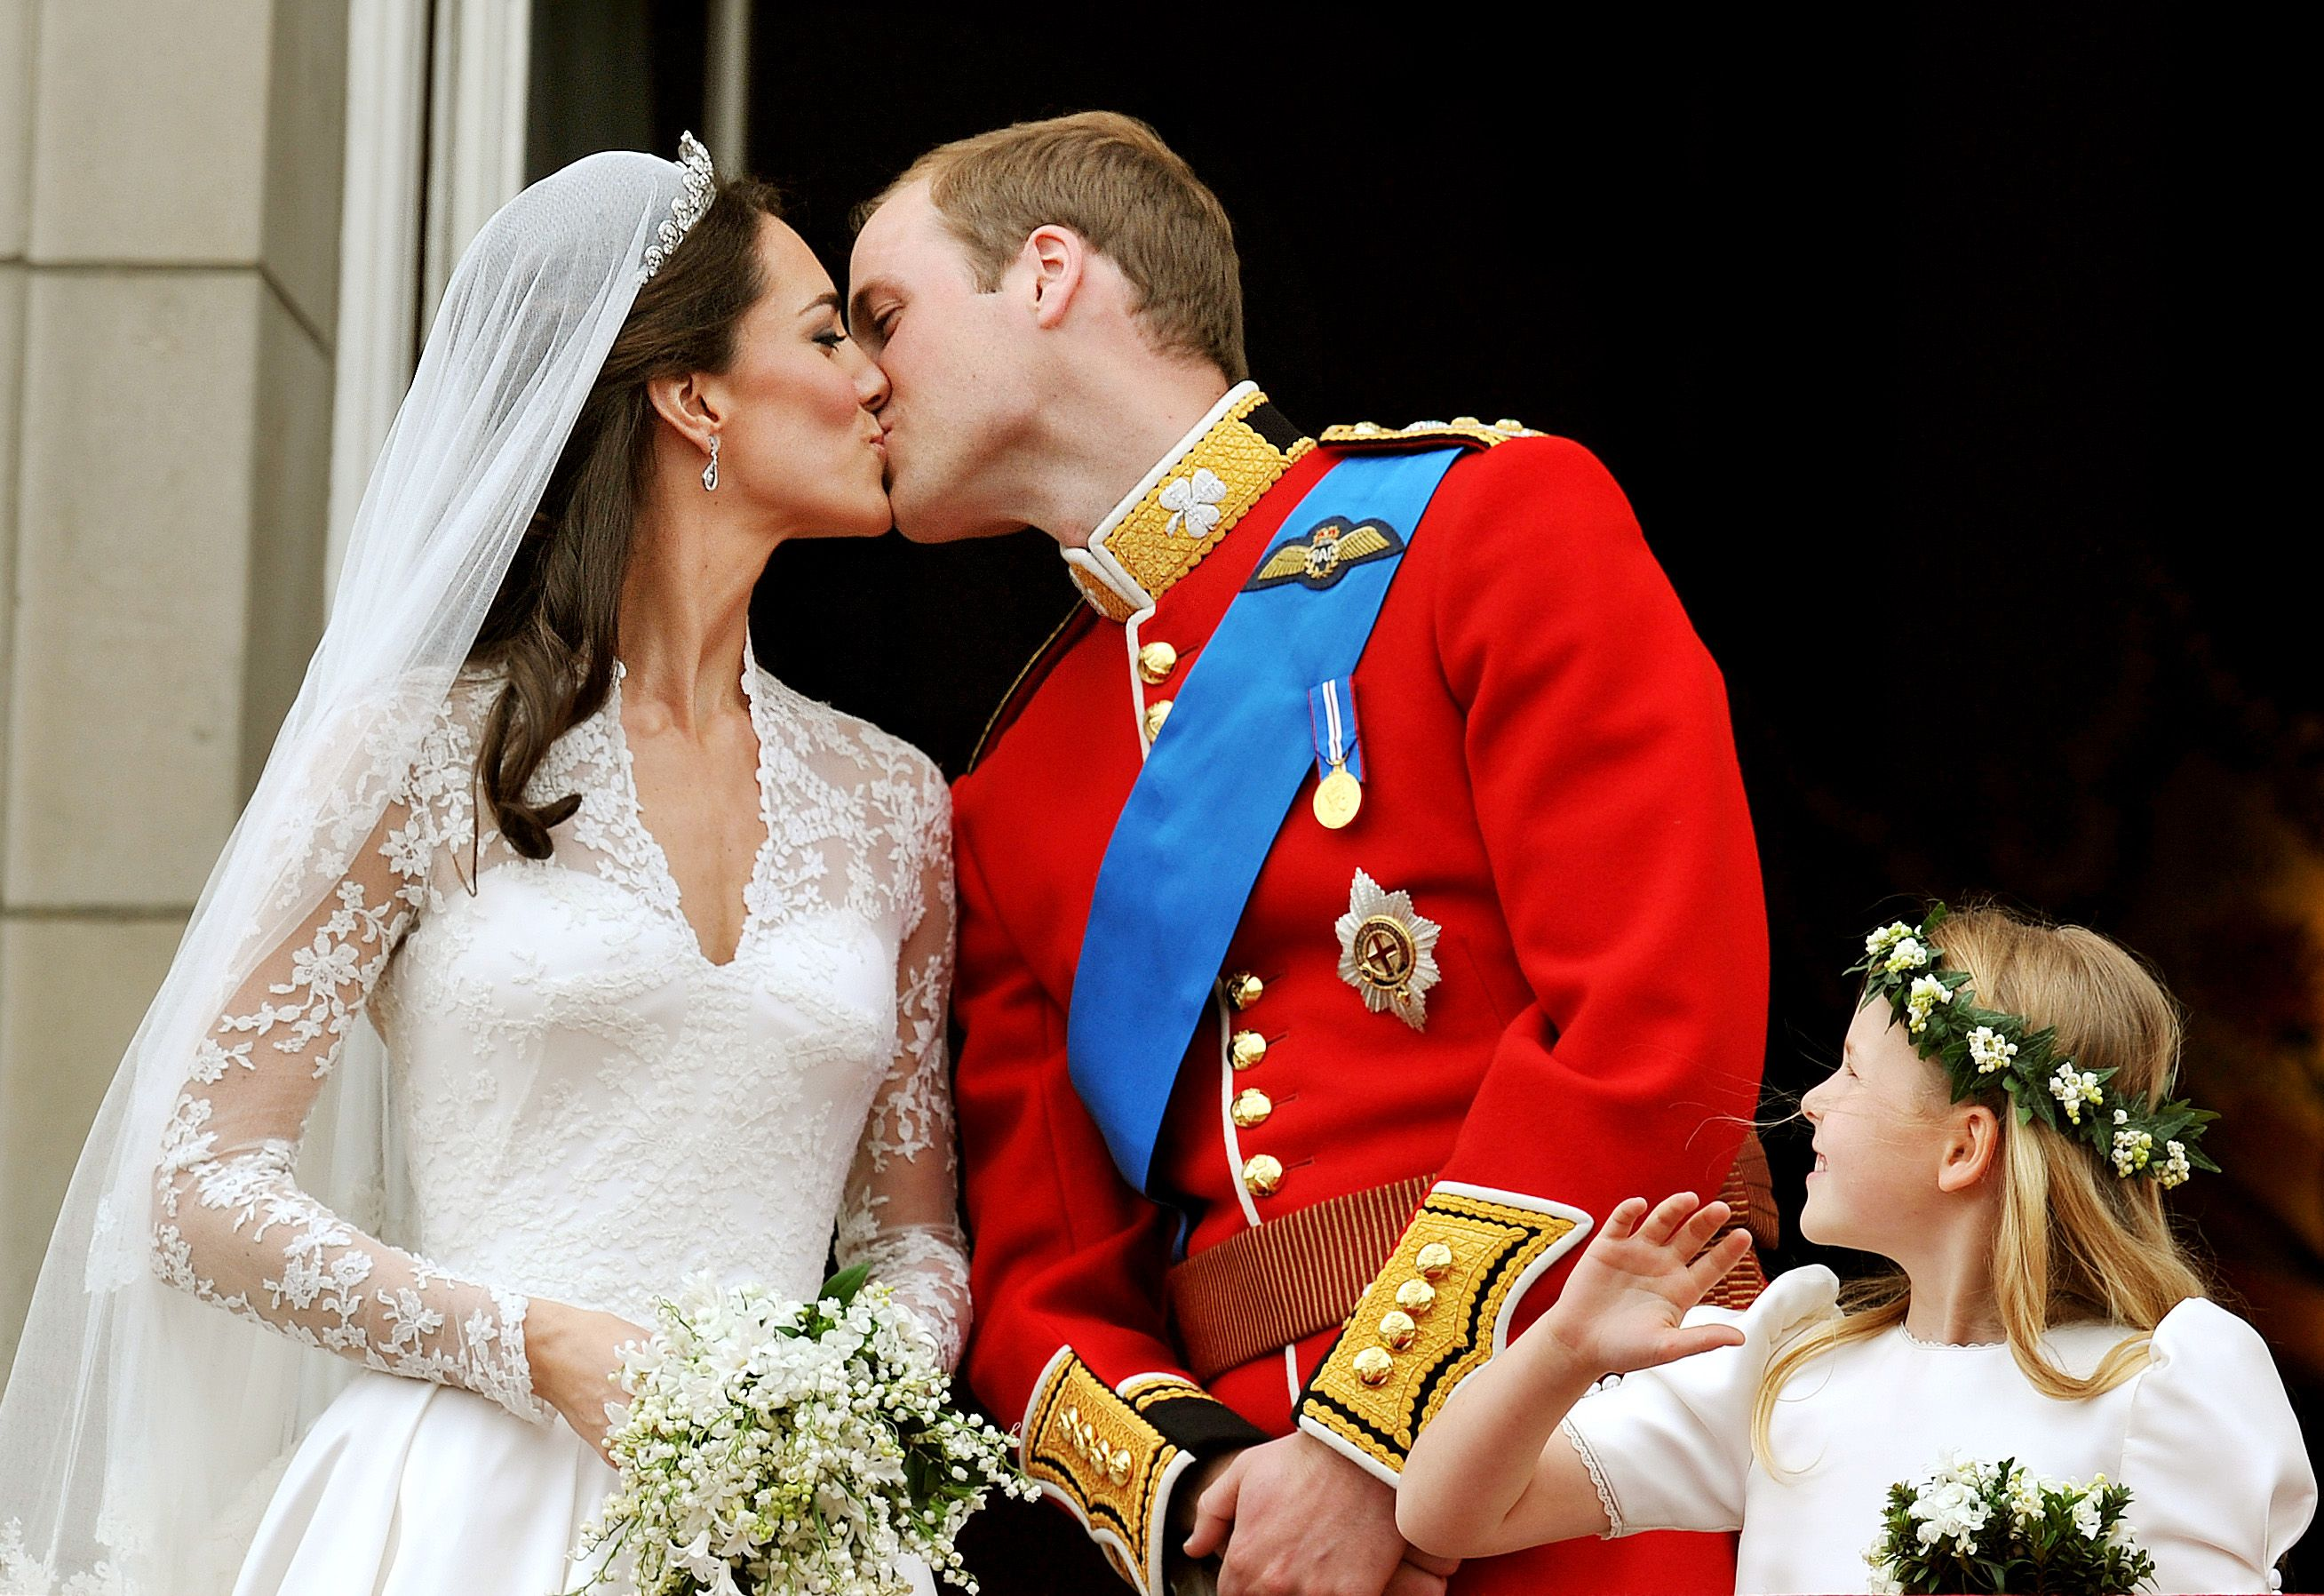 Duchess Kate and Prince William kiss on the balcony of Buckingham Palace after getting married on April 29, 2011, in London, England | Photo: John Stillwell - WPA/Getty Images